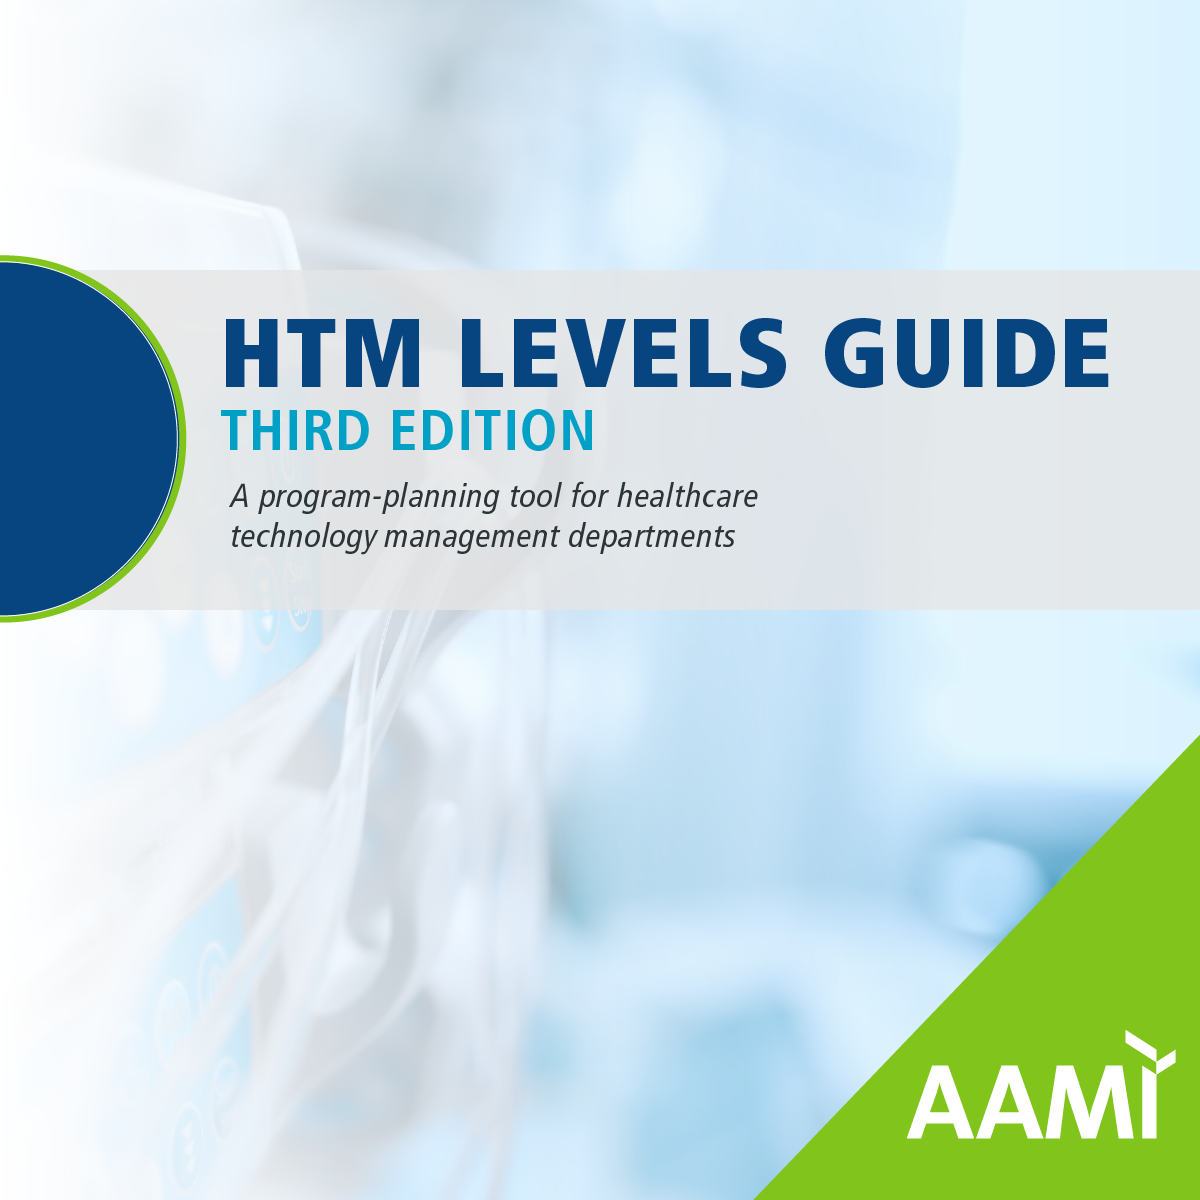 HTM-levels-guide-02